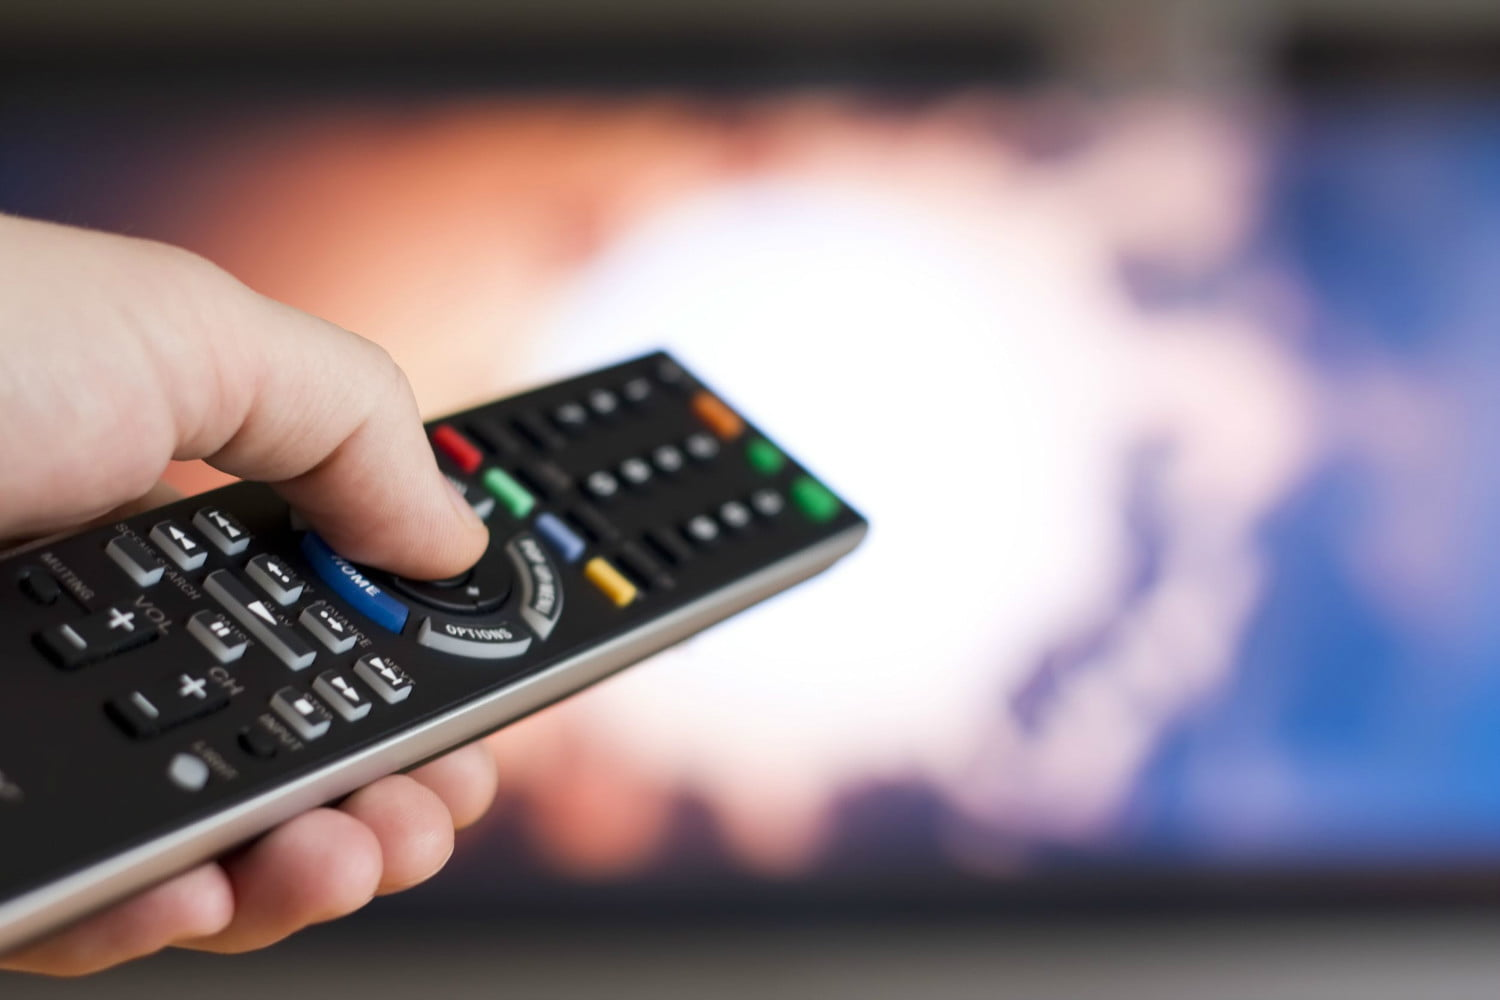 Spectrum TV Essentials Offers 60 Live TV Channels for $15 a